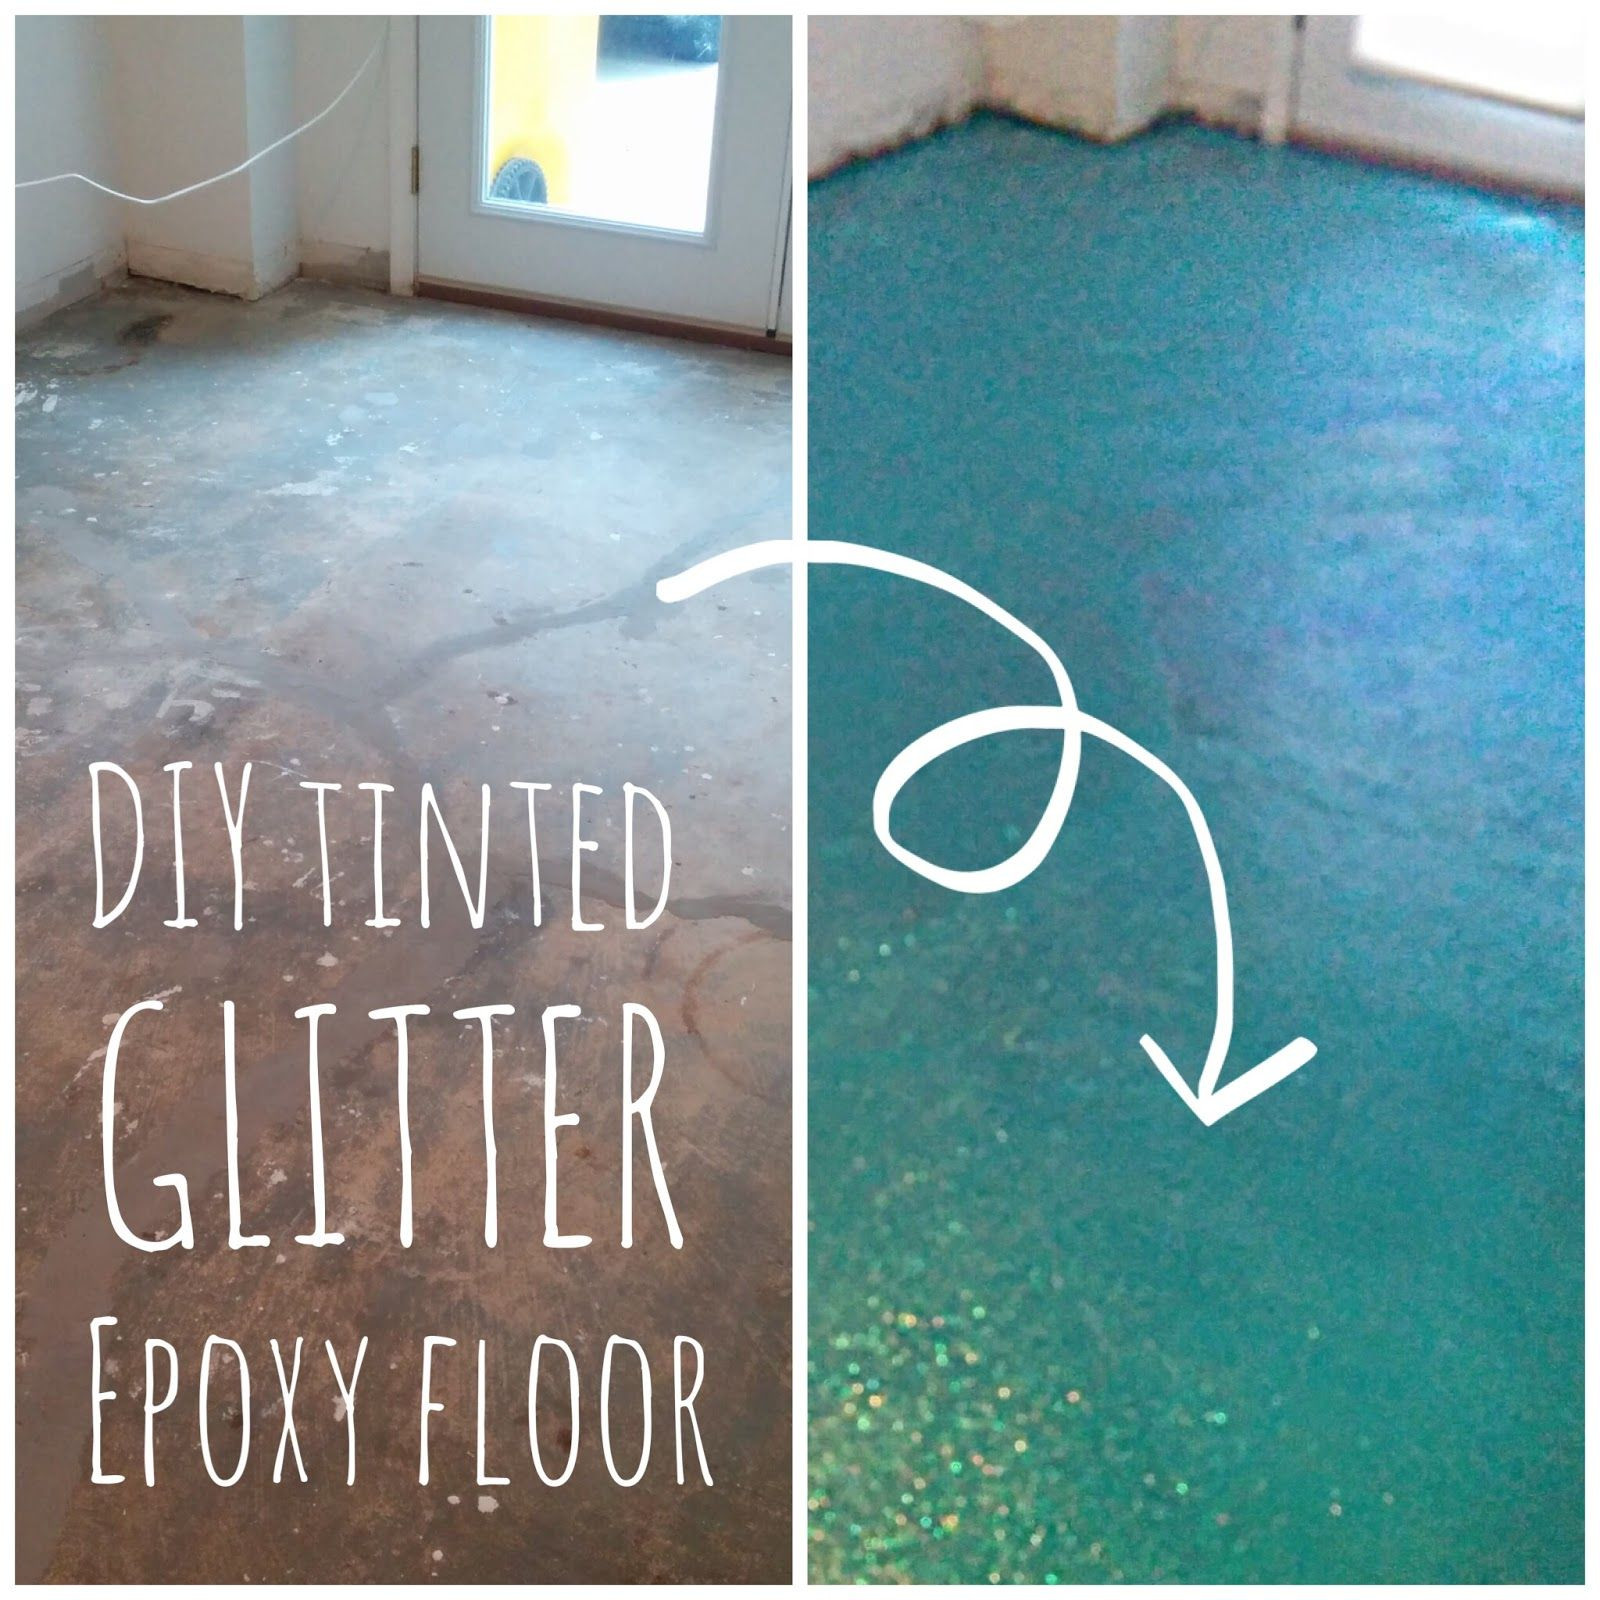 hardwood flooring installation knoxville tn of glitter epoxy floor house basement pinterest epoxy june and board regarding glitter epoxy floor